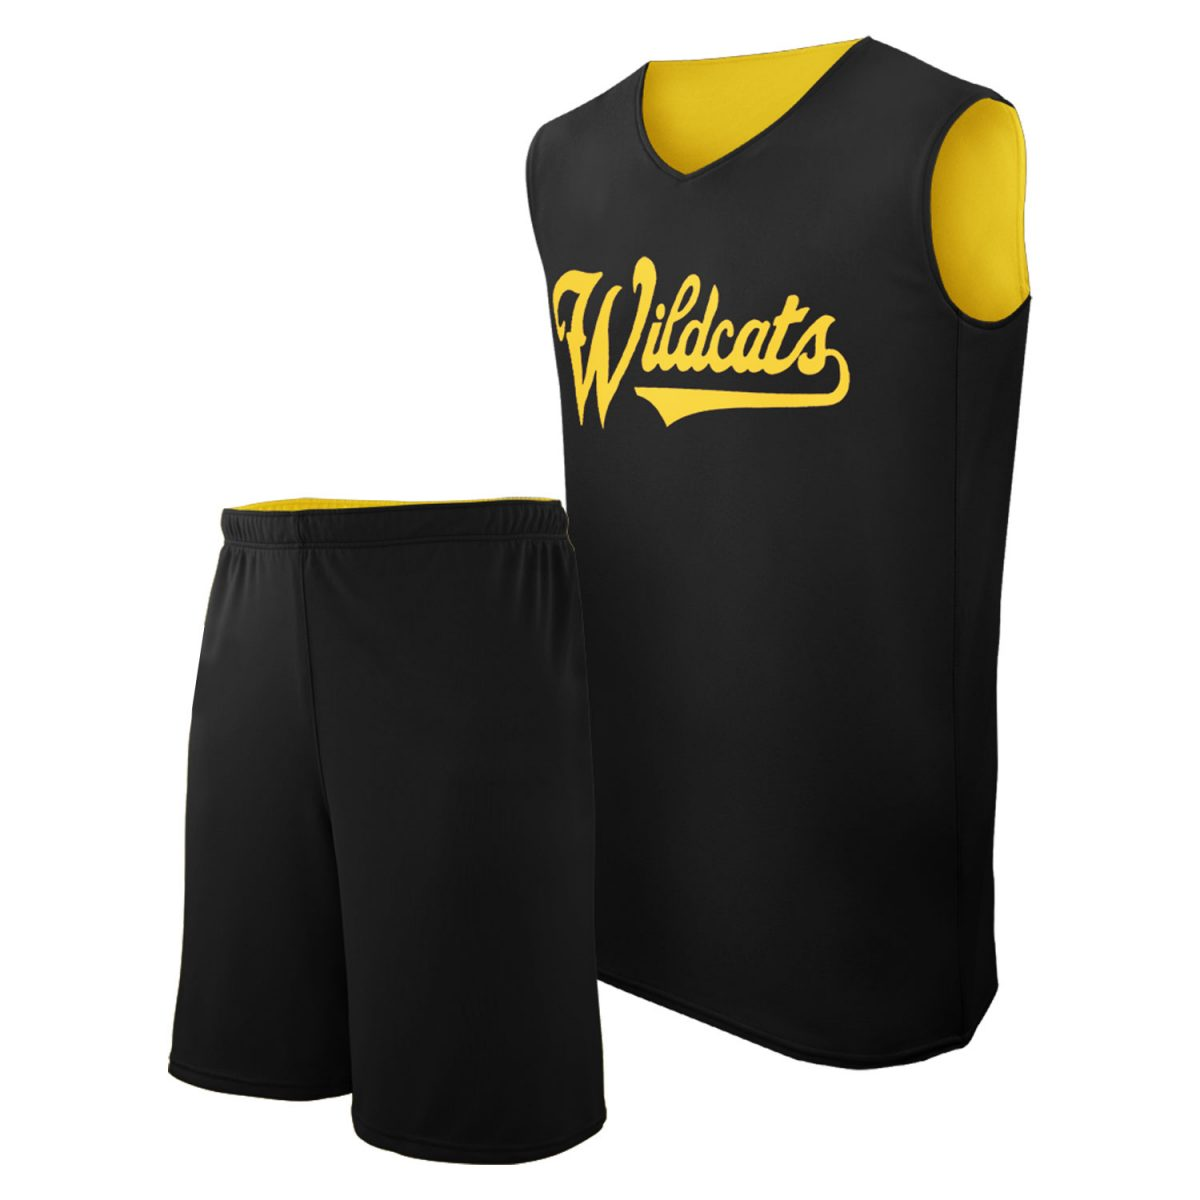 Boys Basketball Uniforms Manufacturers in Surat